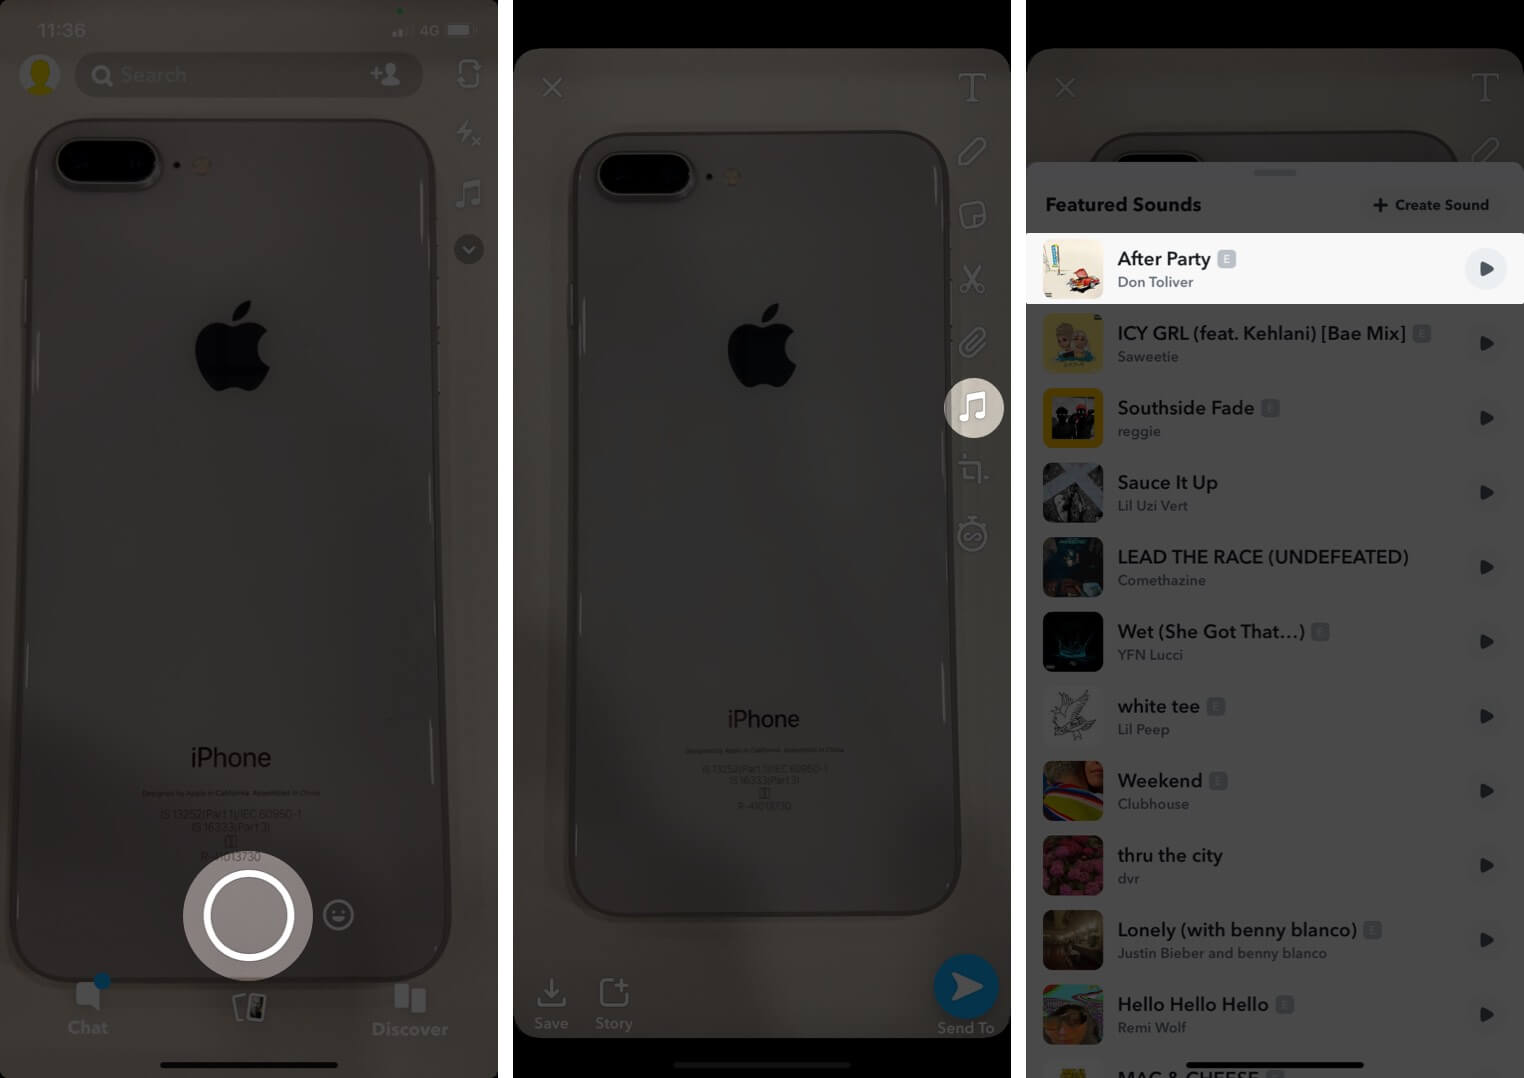 Take Snap Tap on Music and Then Tap on Song in Snapchat on iPhone